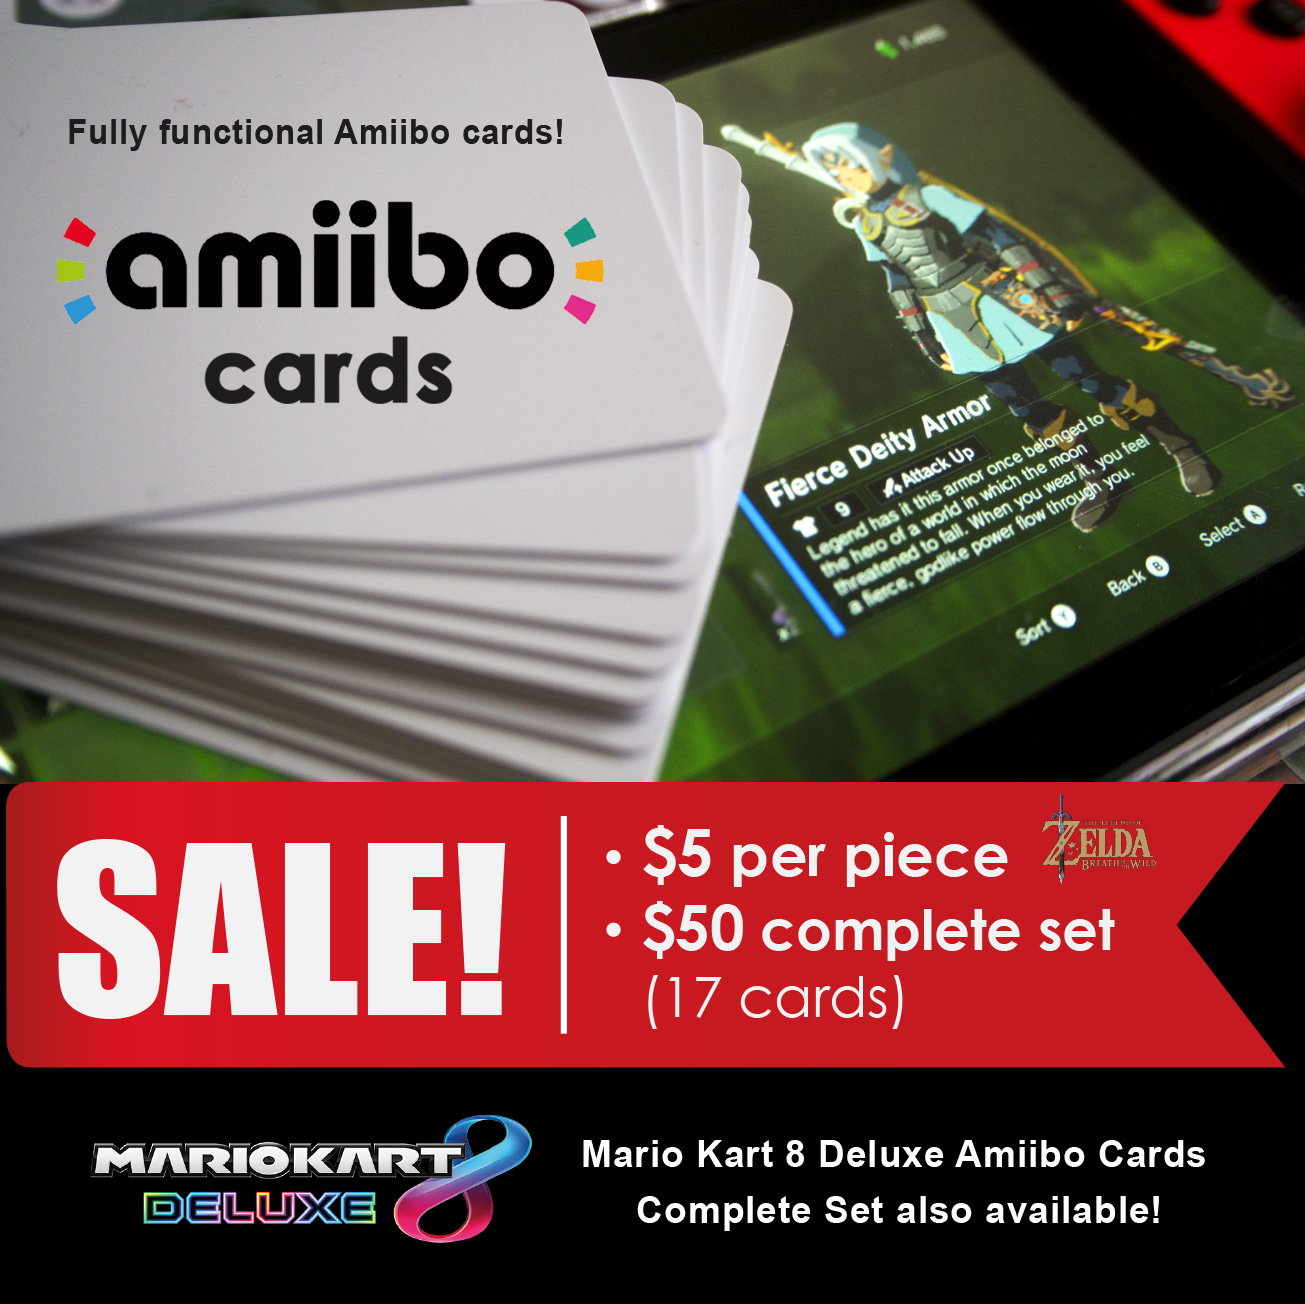 Zelda Amiibo Cards For Nintendo Switch Portable Solution Toys Red Blue Bundle 2games 2amiibo Games Video Gaming Accessories On Carousell